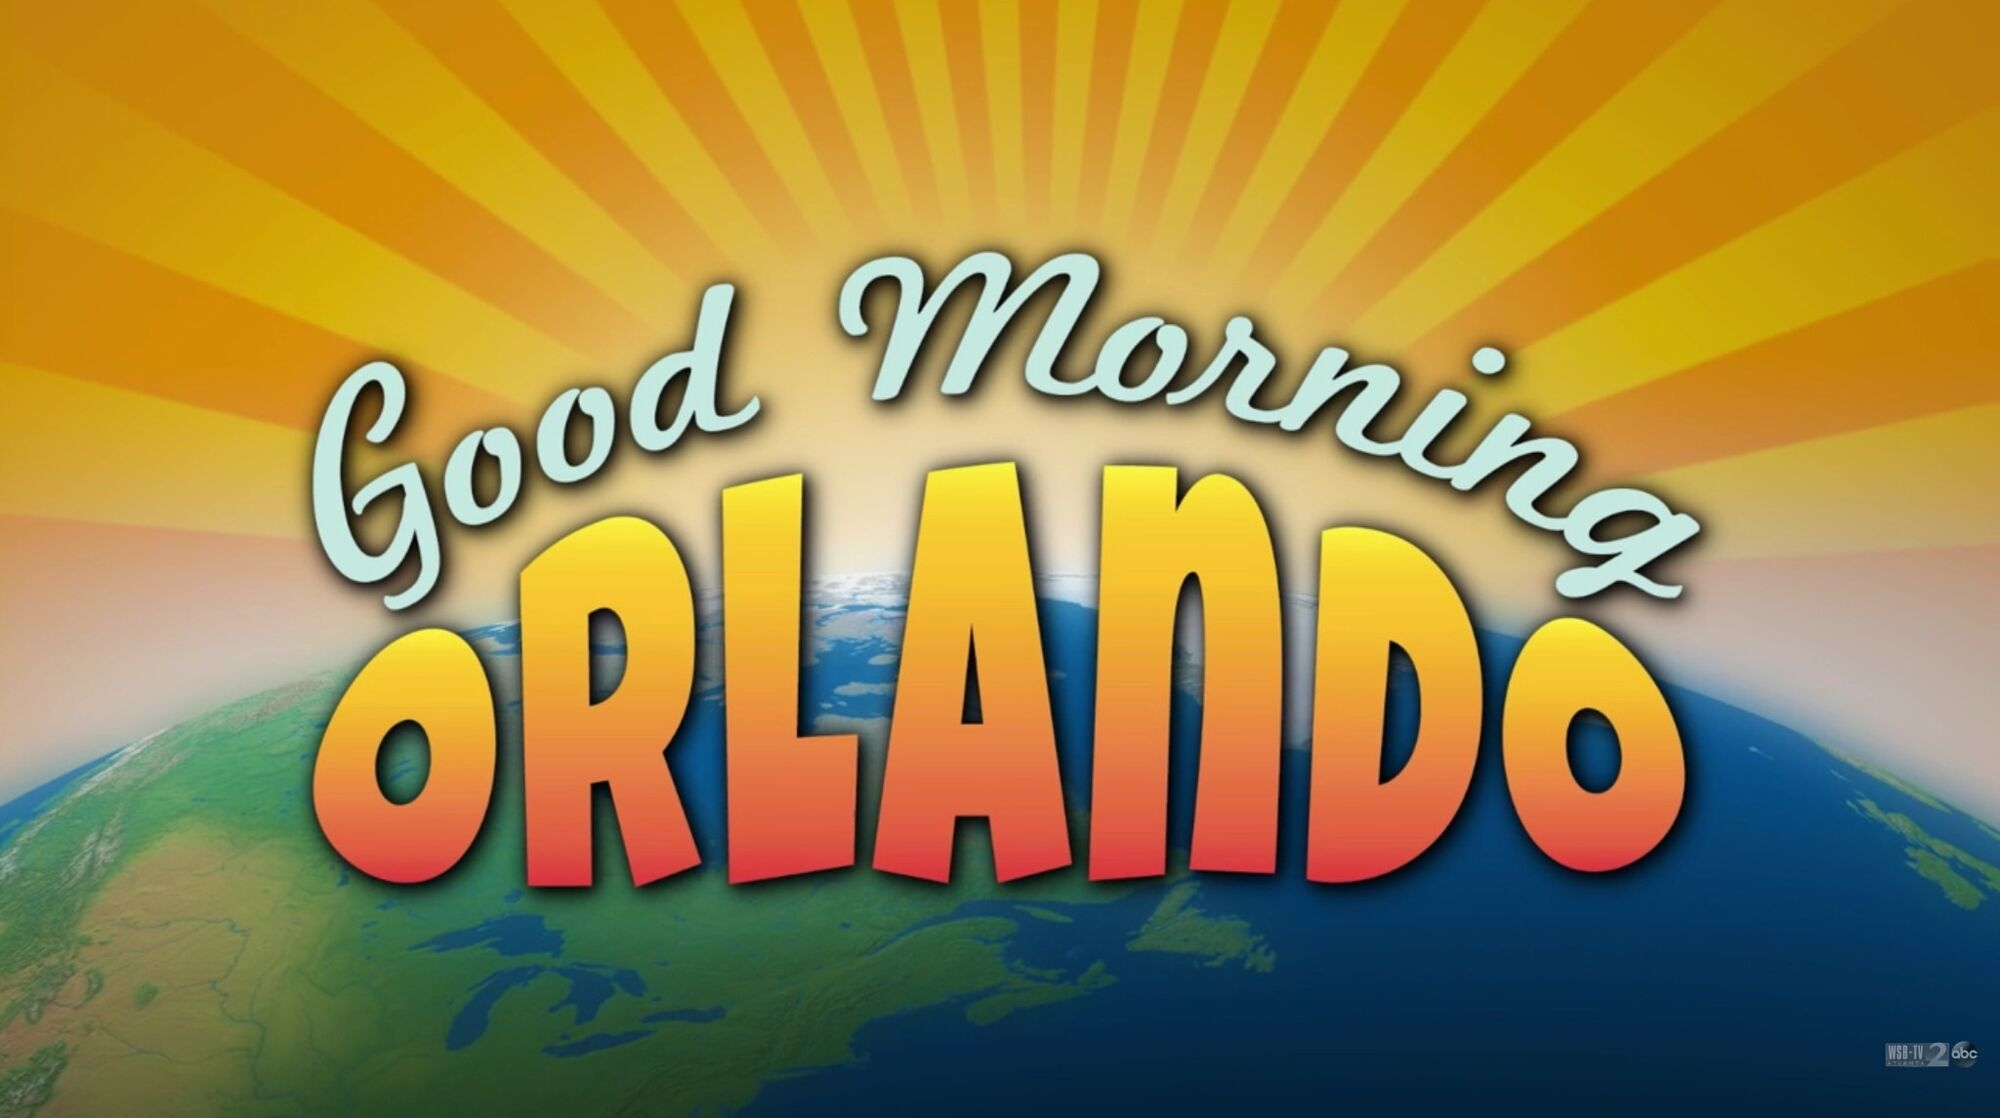 Good Morning Orlando : Good morning orlando news channel fresh off the boat